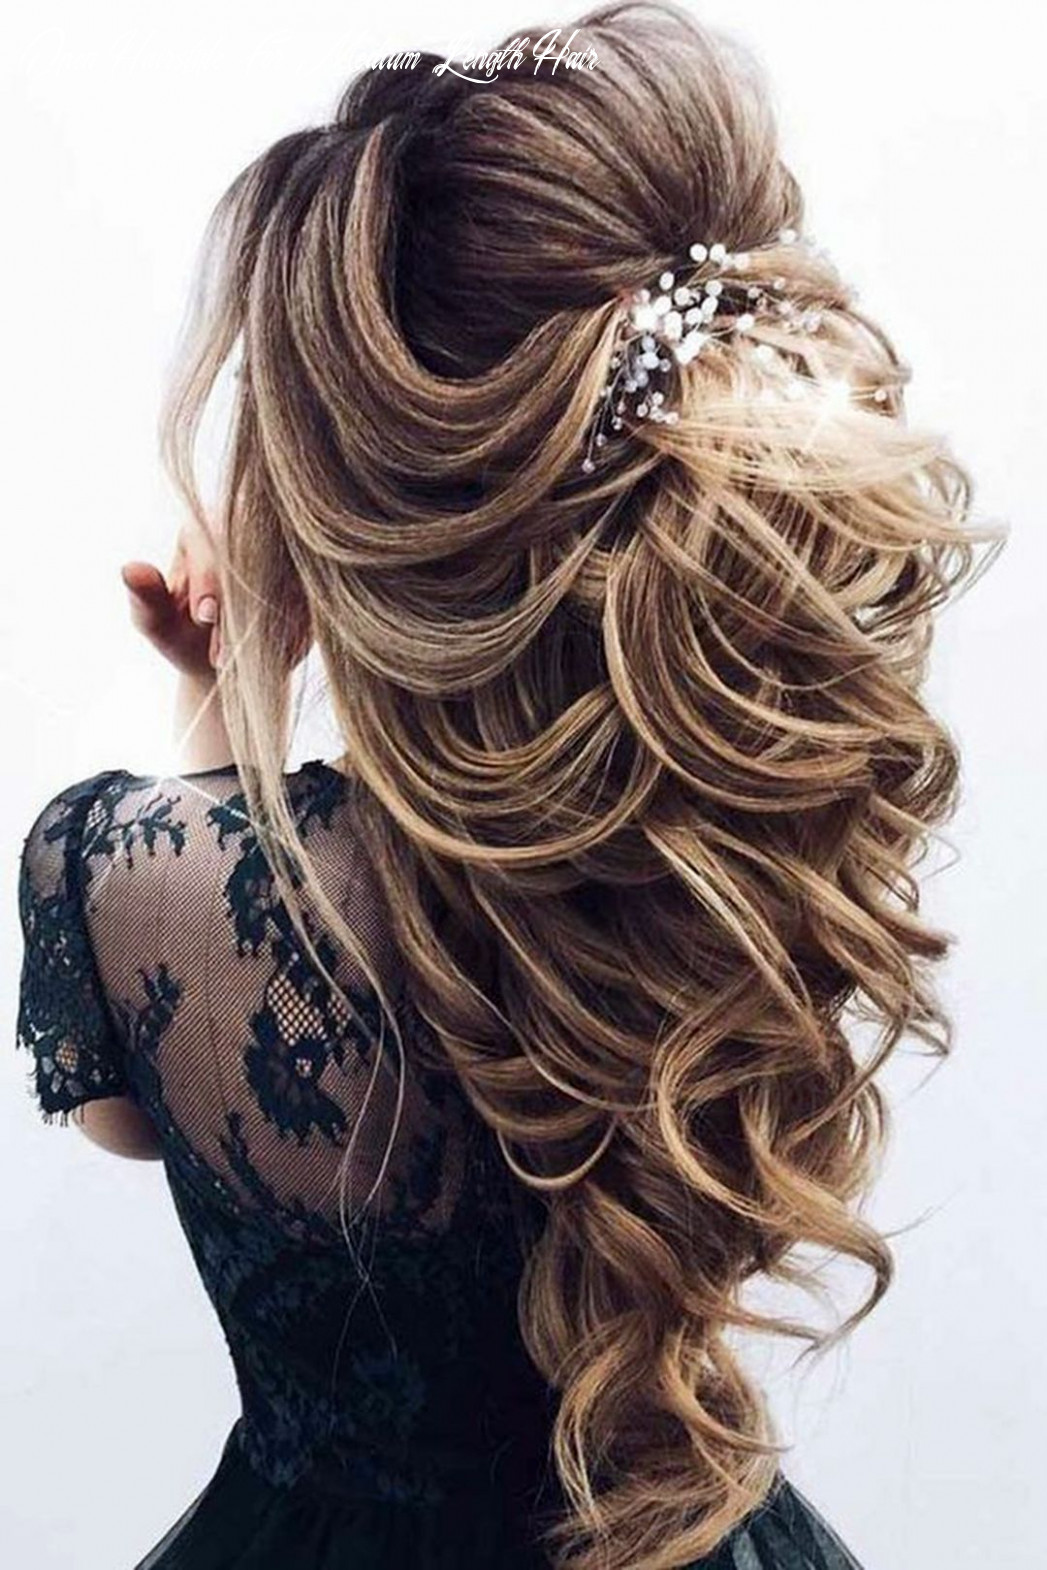 11 memorable prom hairstyle ideas that will make you the center of